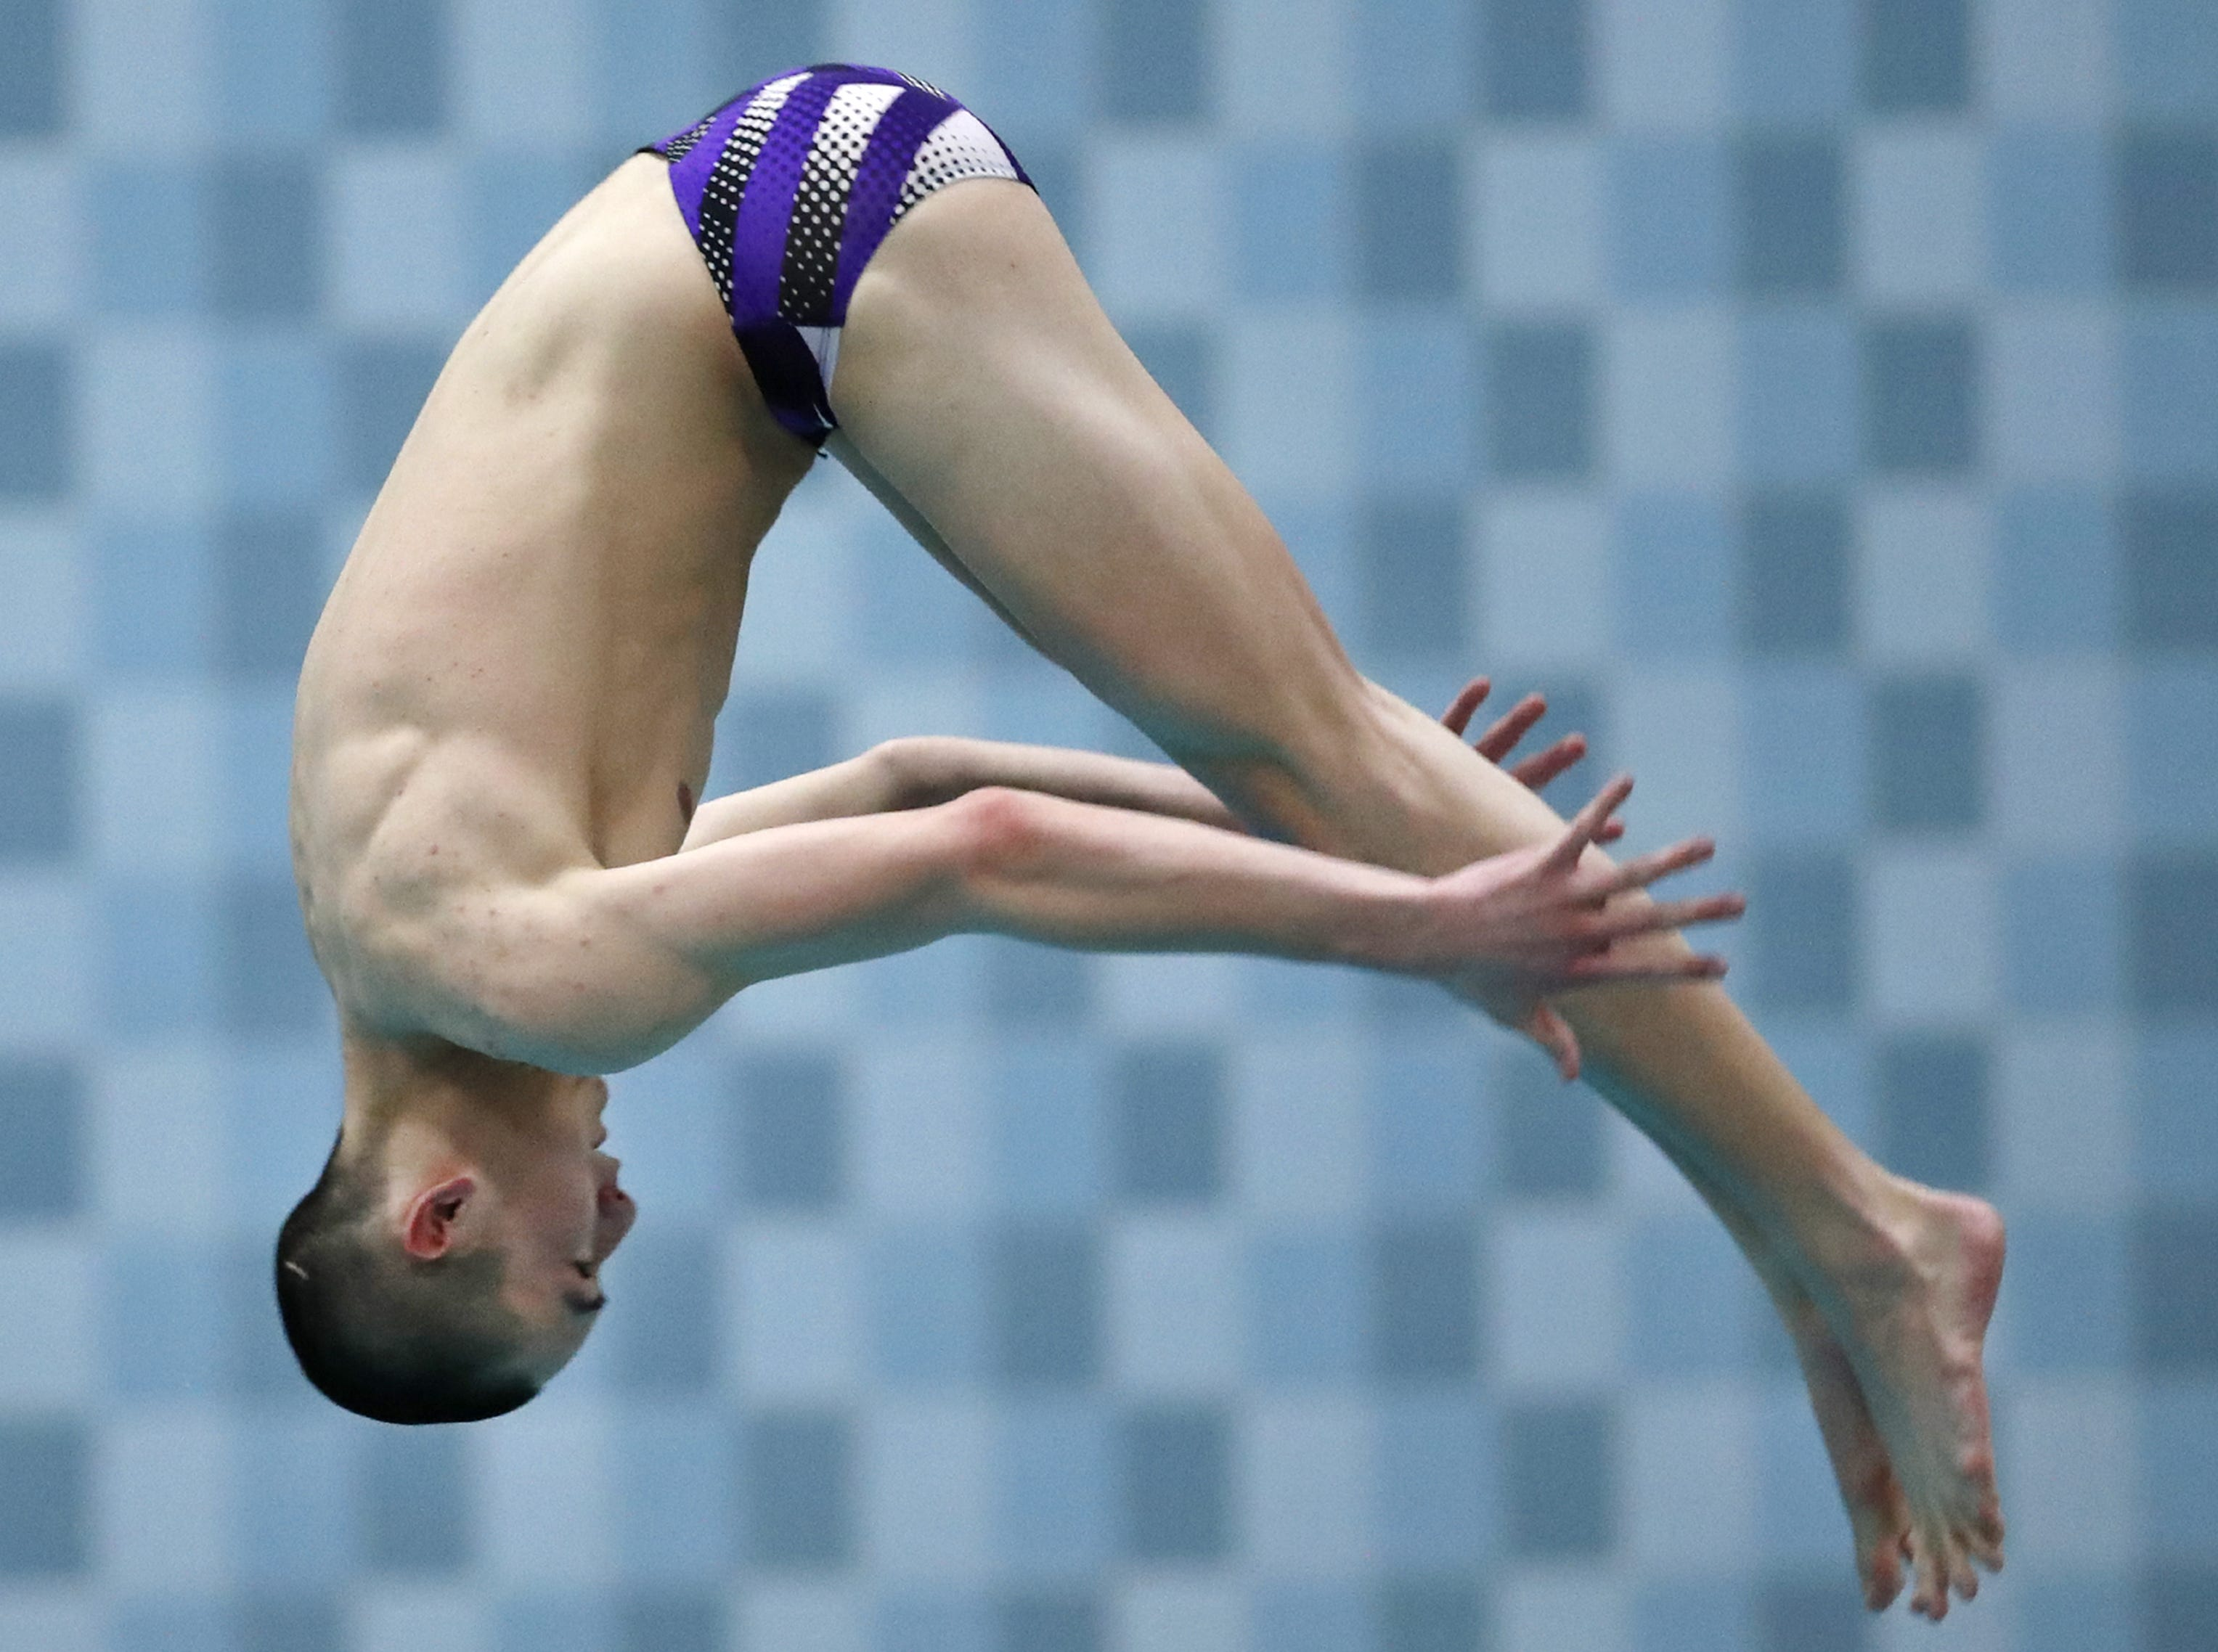 Kiel/Elkhart Lake-Glenbeulah's Charlie Tanouye competes in the diving portion of the Division 2 2019 State Boys Swimming and Diving Championships Friday, Feb. 15, 2019, at the UW Natatorium in Madison, Wis. Danny Damiani/USA TODAY NETWORK-Wisconsin